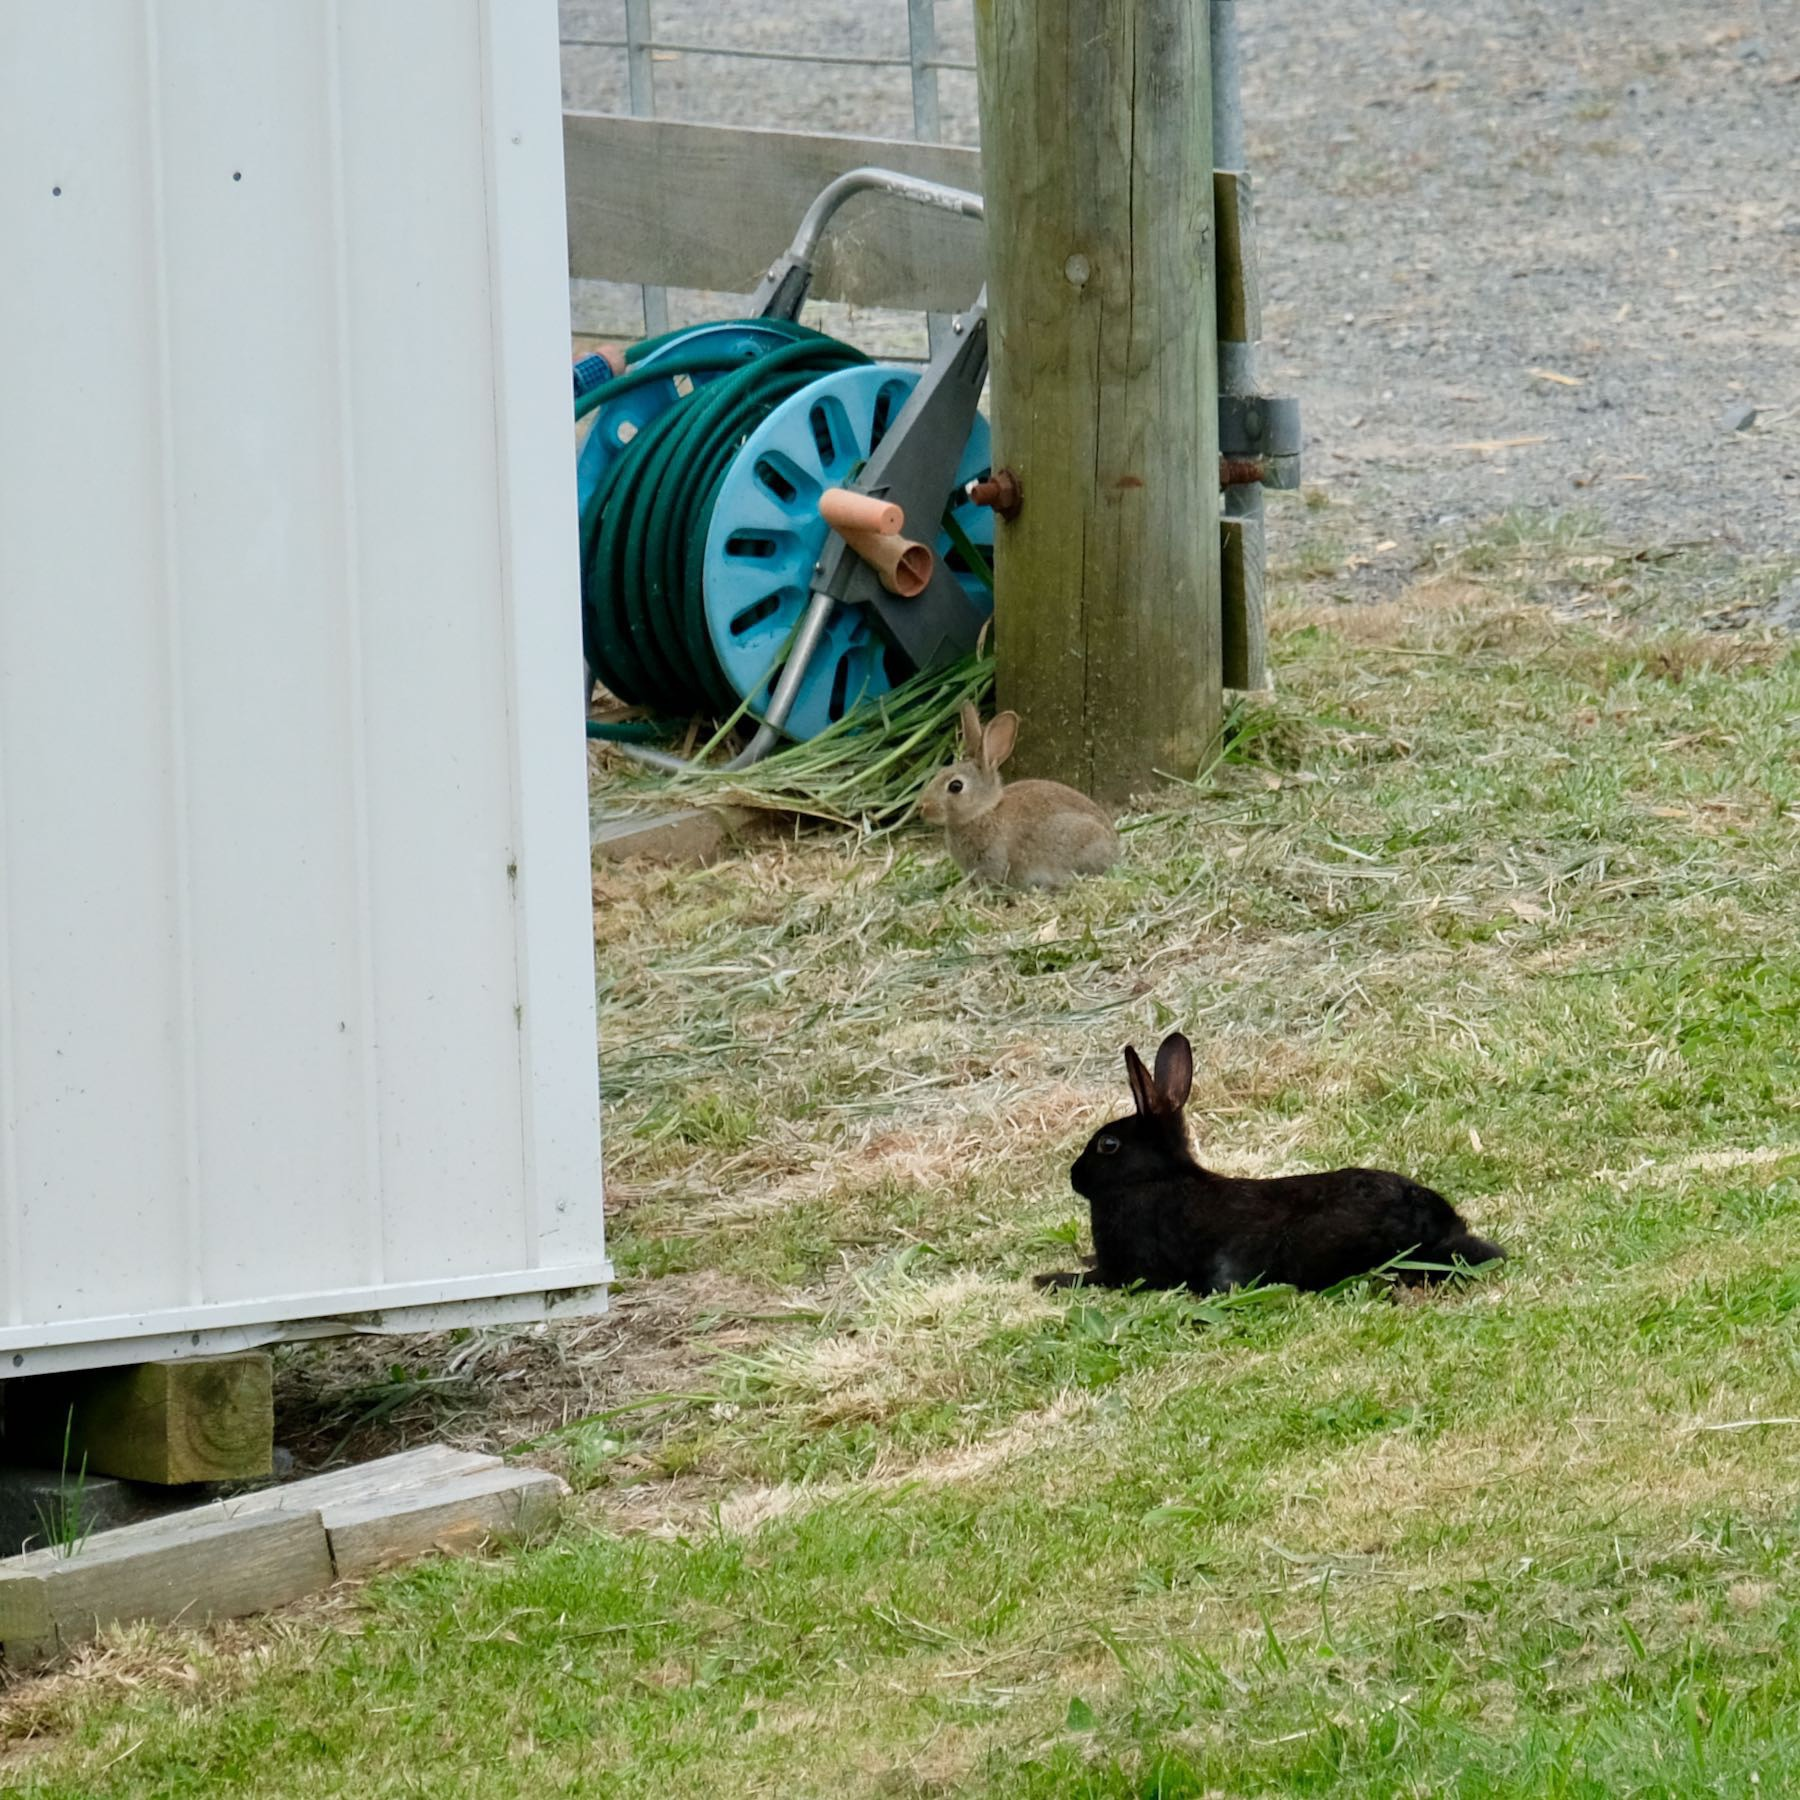 Brown baby rabbit and adult black rabbit lying on the grass.